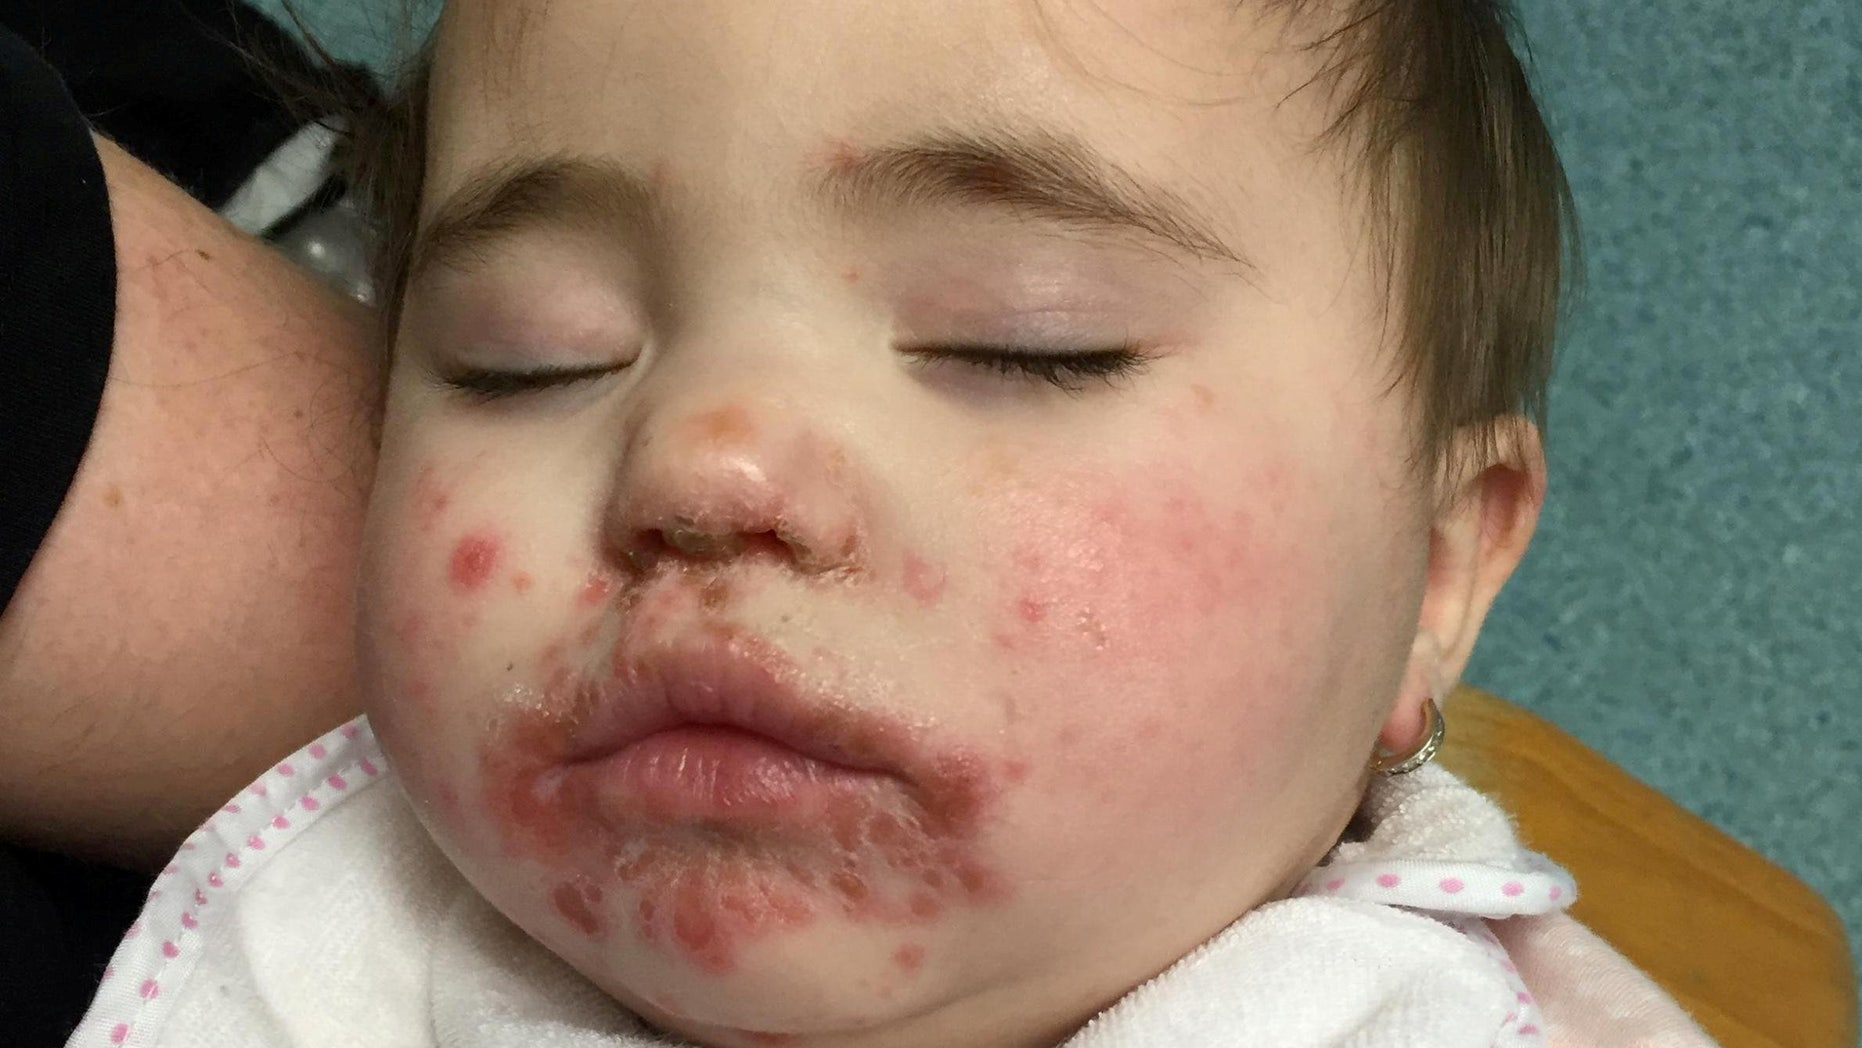 Pictures show 10-month-old Dolcie-Rae suffering from hand, foot and mouth disease at Basildon Hospital.